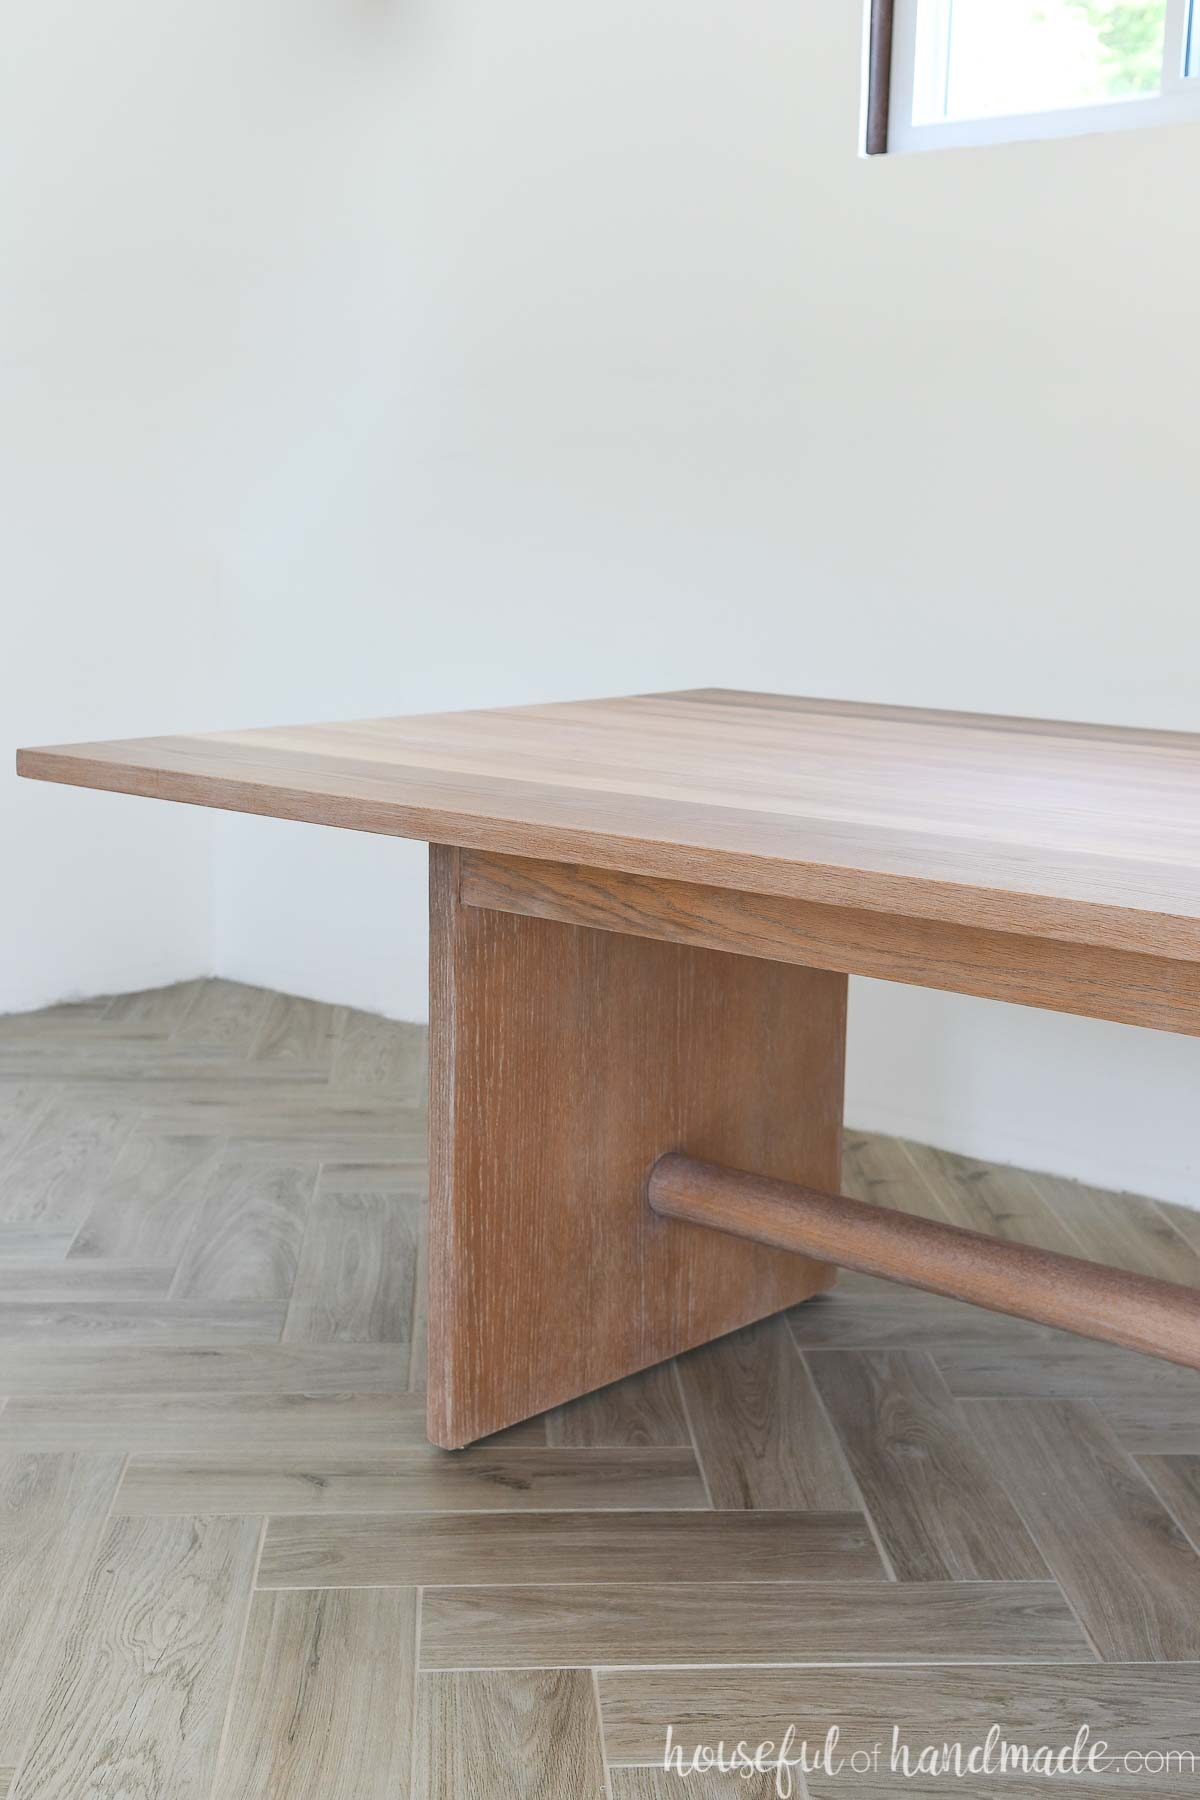 Close up of the one side of the refinished oak table top and leg with round center support.